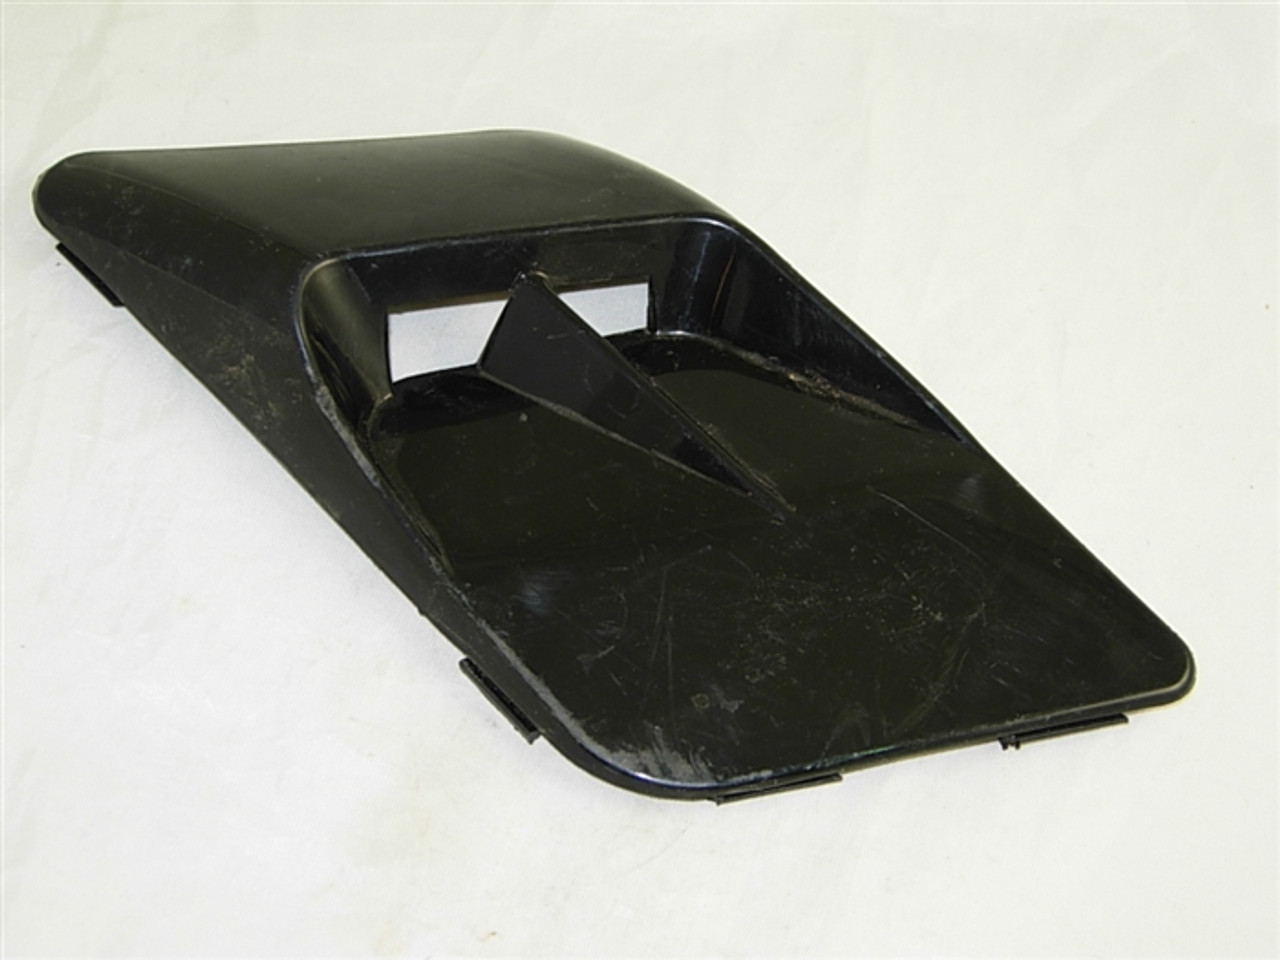 SIDE VENT COVER (RIGHT SIDE) 11845-A103-9